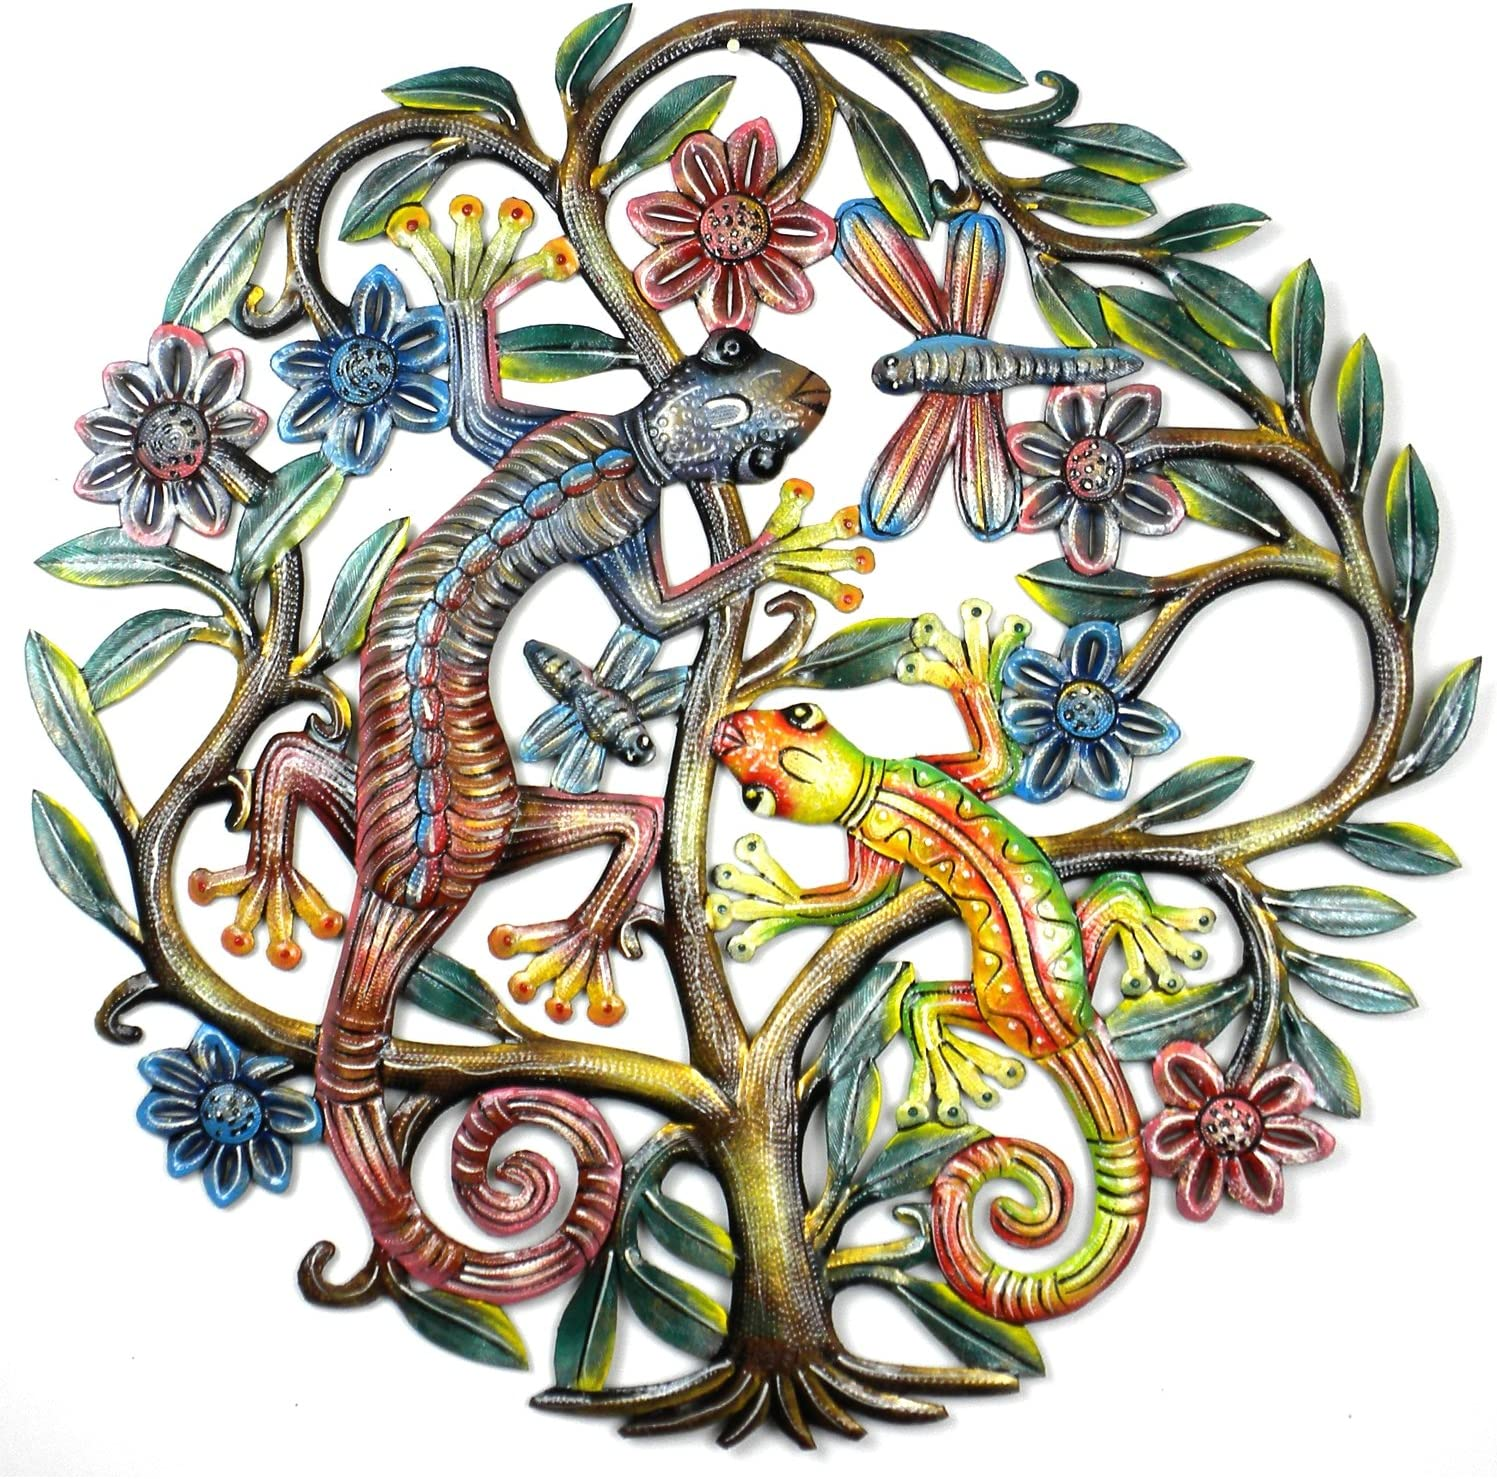 """Global Crafts 24"""" Recycled Hand-Painted Haitian Metal Wall Art, Painted Gecko in Tree of Life"""